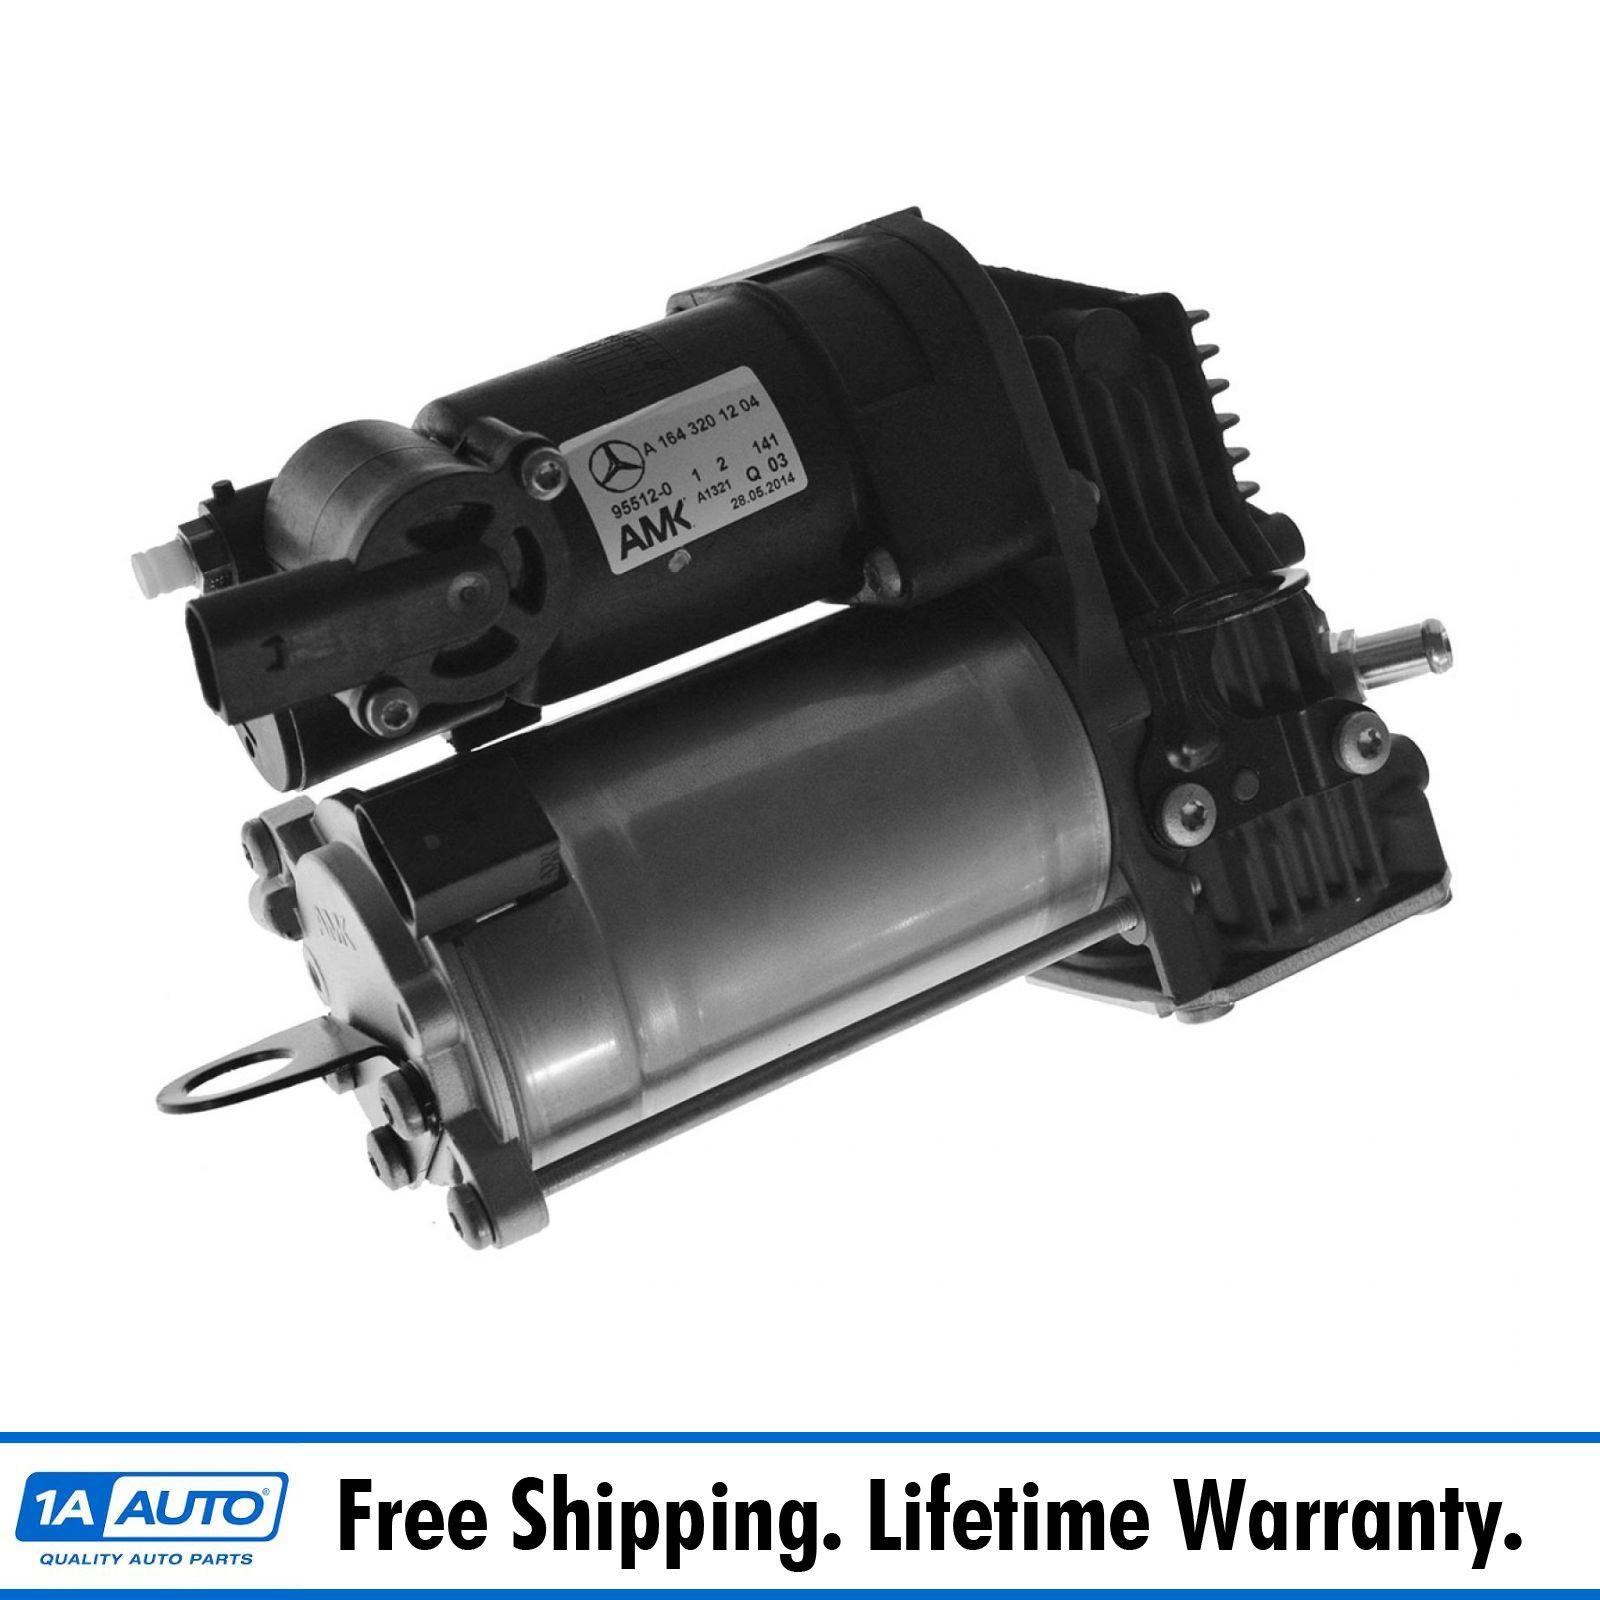 Air ride suspension compressor pump for mercedes benz ebay for Air suspension compressor mercedes benz